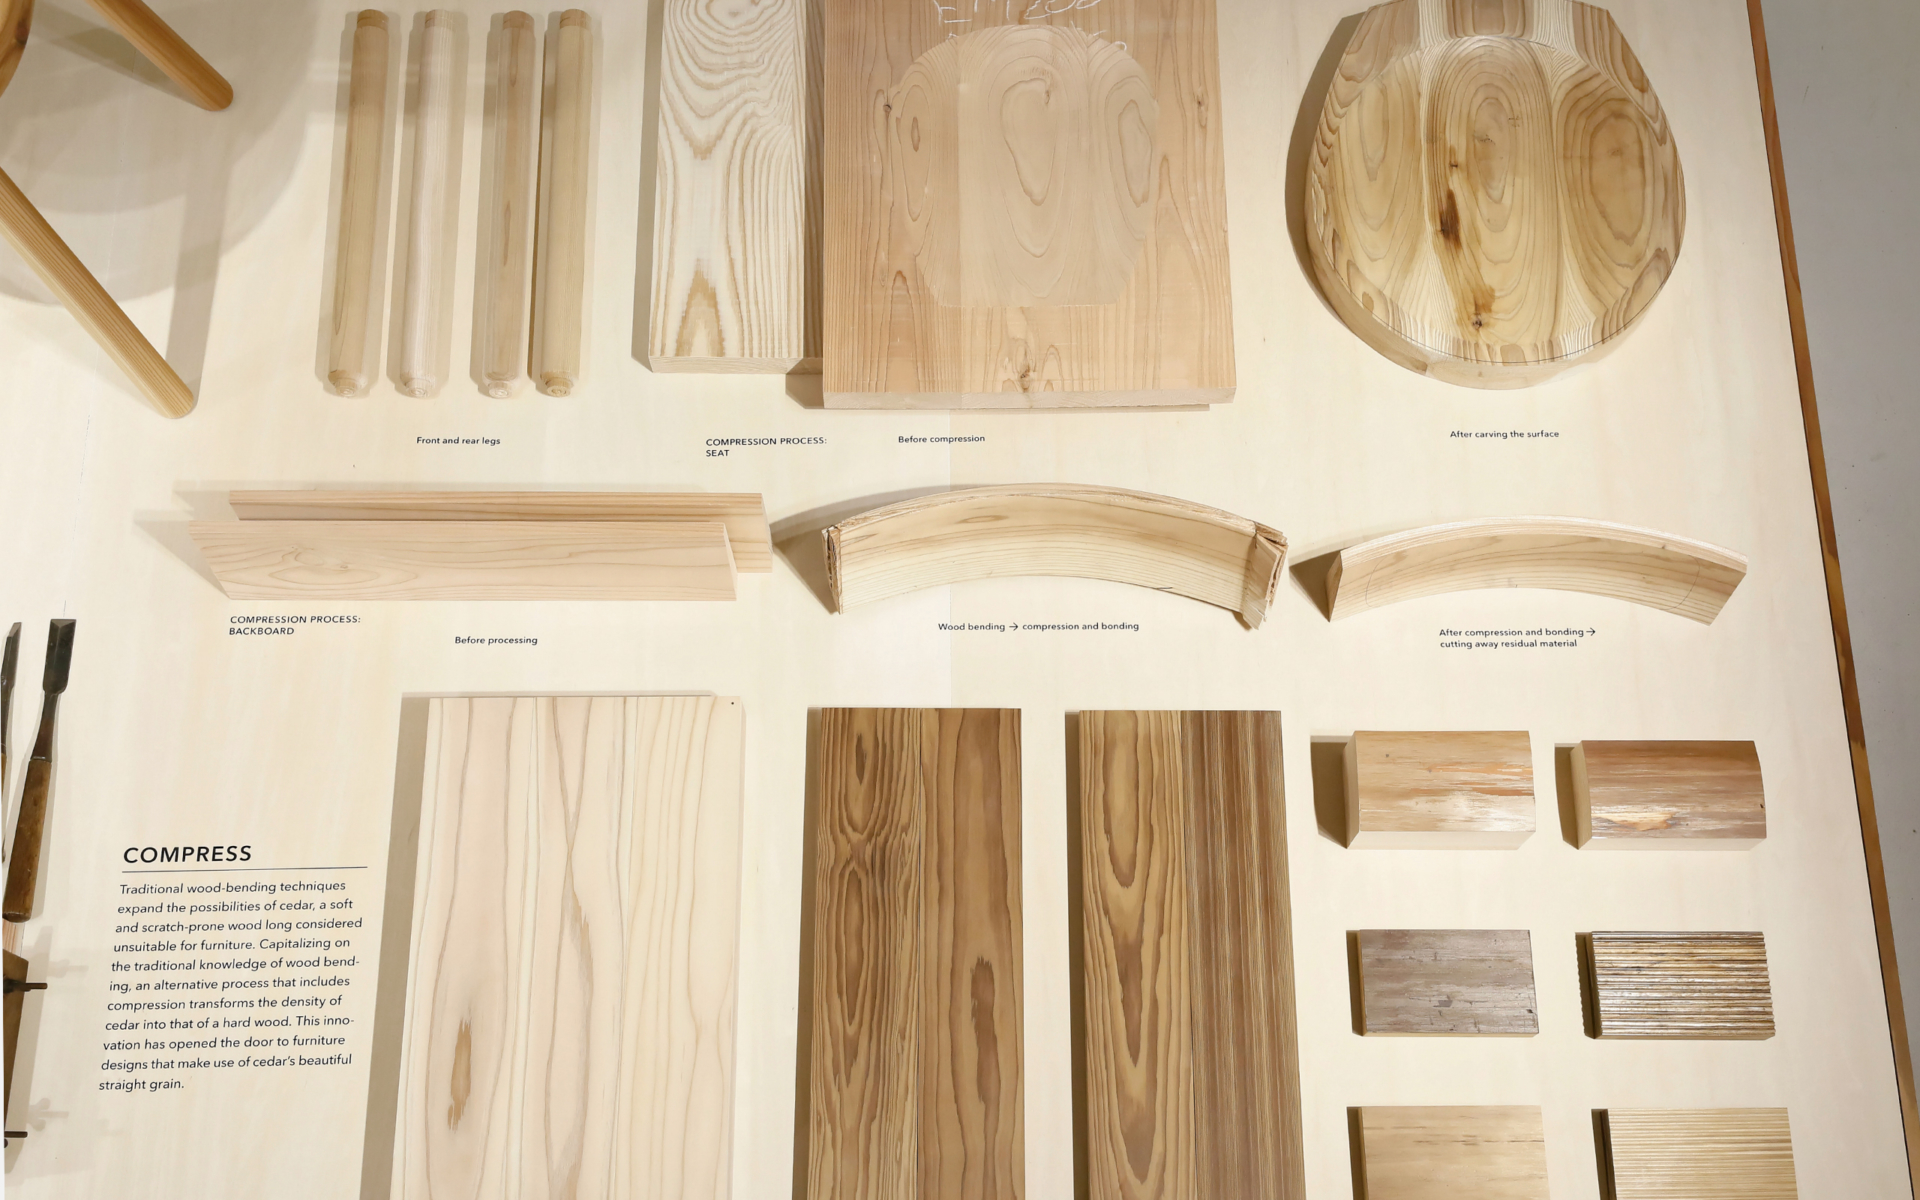 HIDA: A Woodwork Tradition in the Making